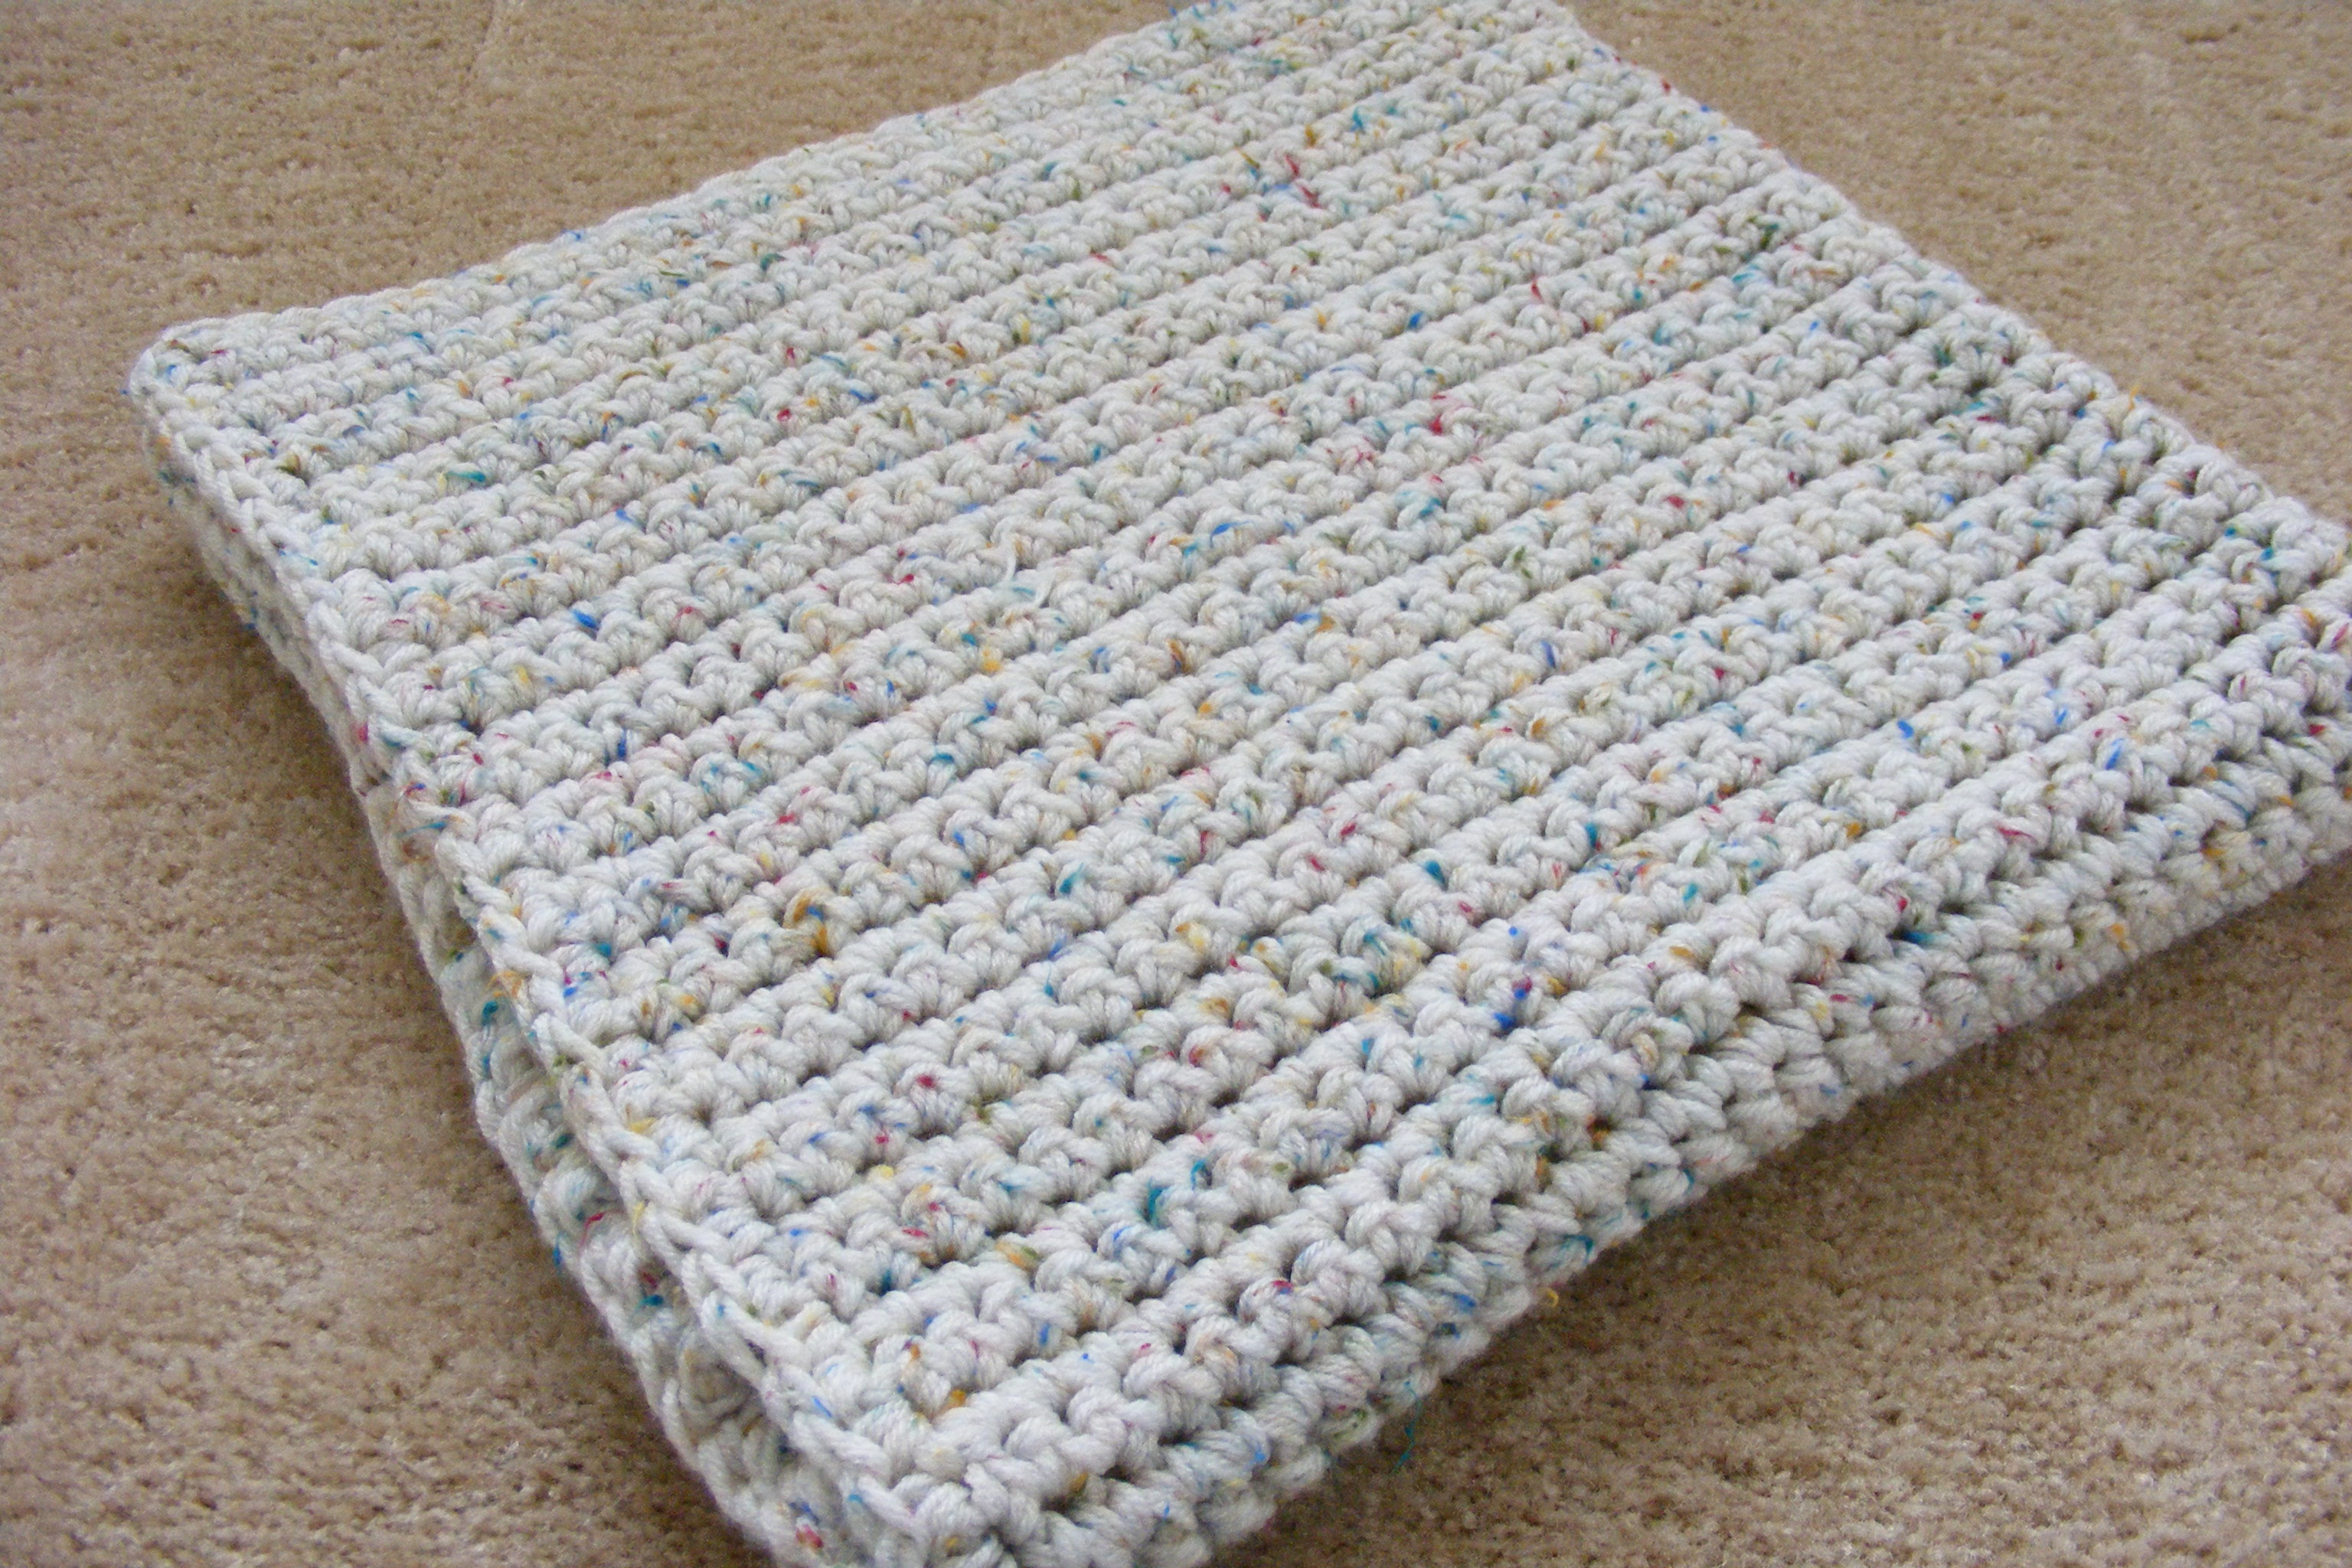 Different Crochet Patterns Baby Blanket : Single Crochet Baby Blanket GretchKals Yarny Adventures